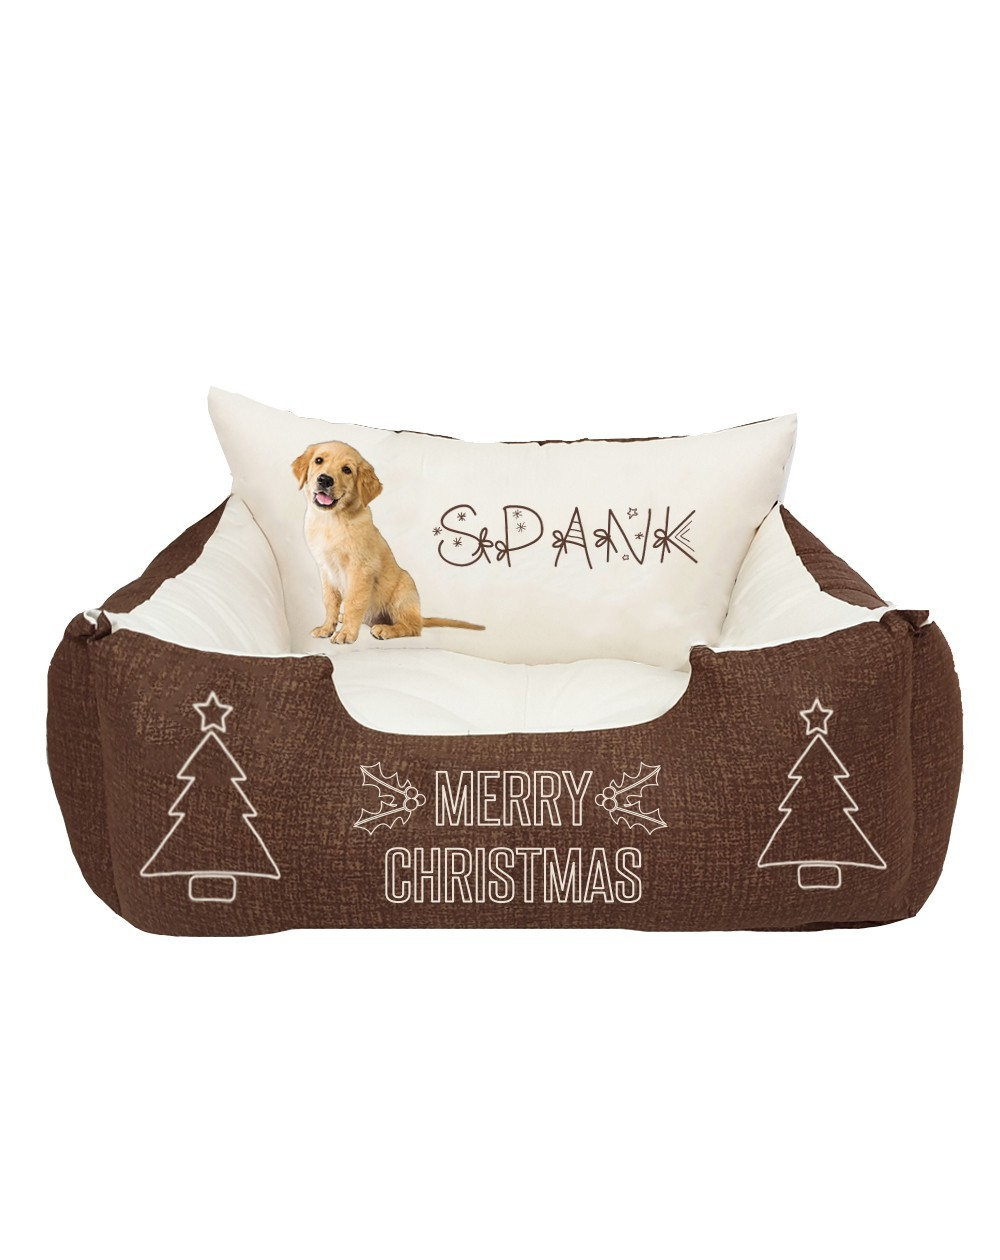 Christmas Bed for dog with photo